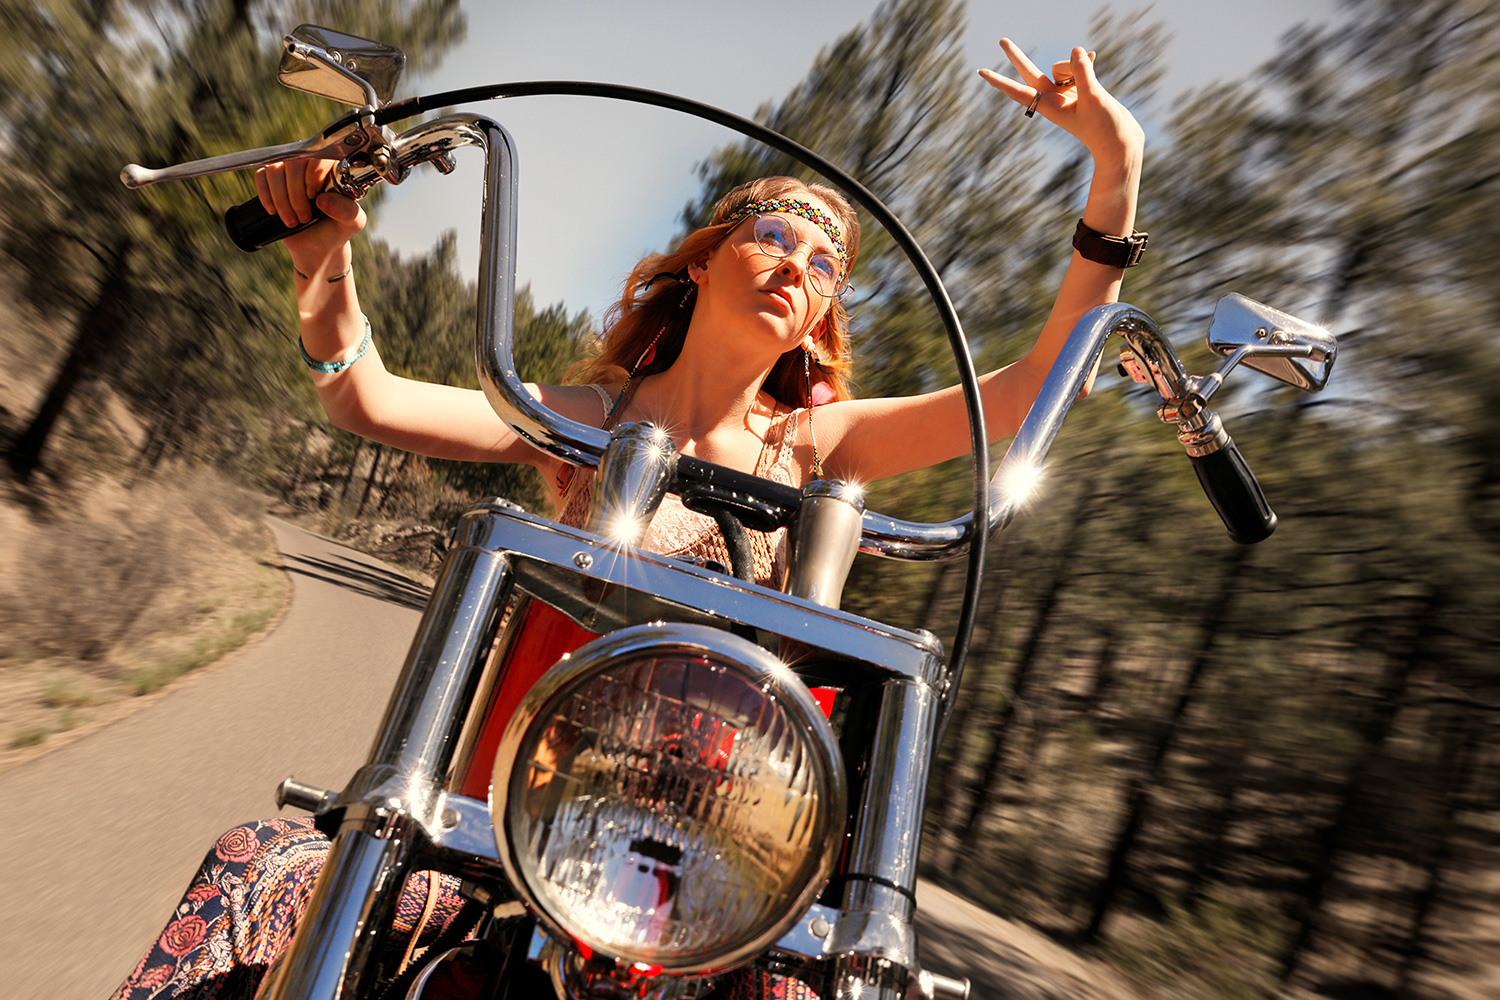 Canon Explorers of Light Series Q&A with photographer Bruce Dorn – Young woman on a motorcycle